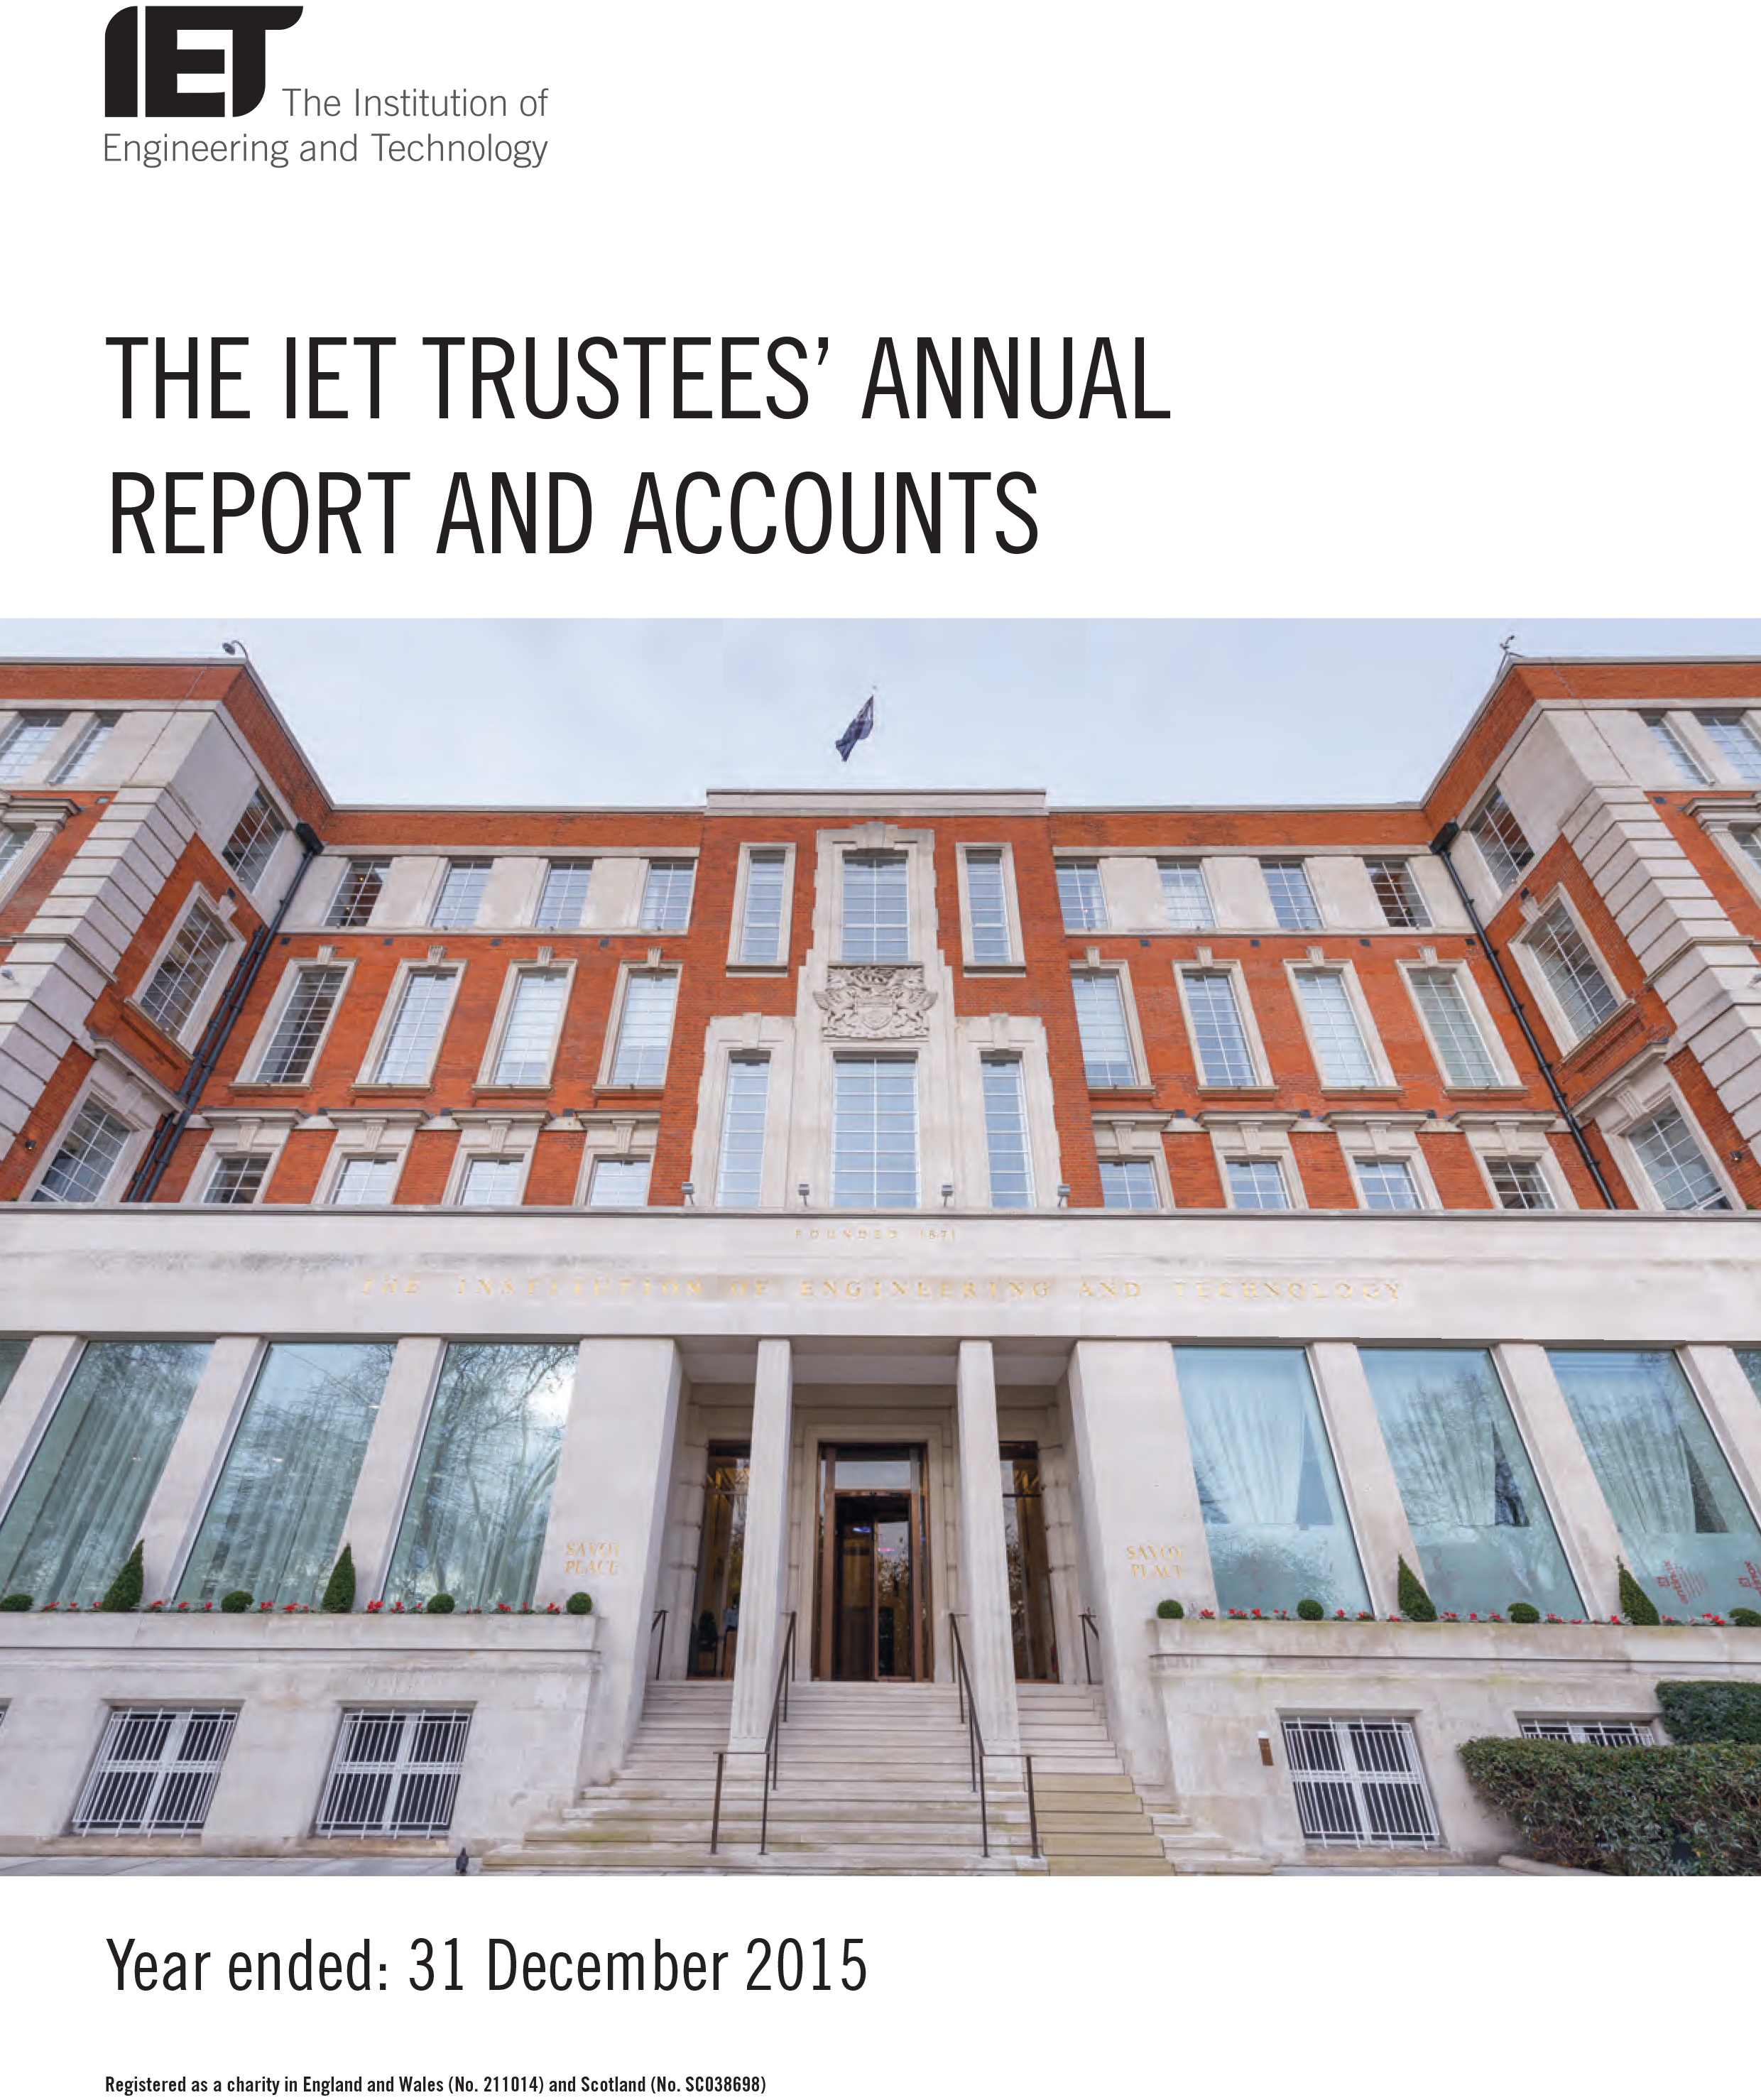 2015 IET Annual Report cover image